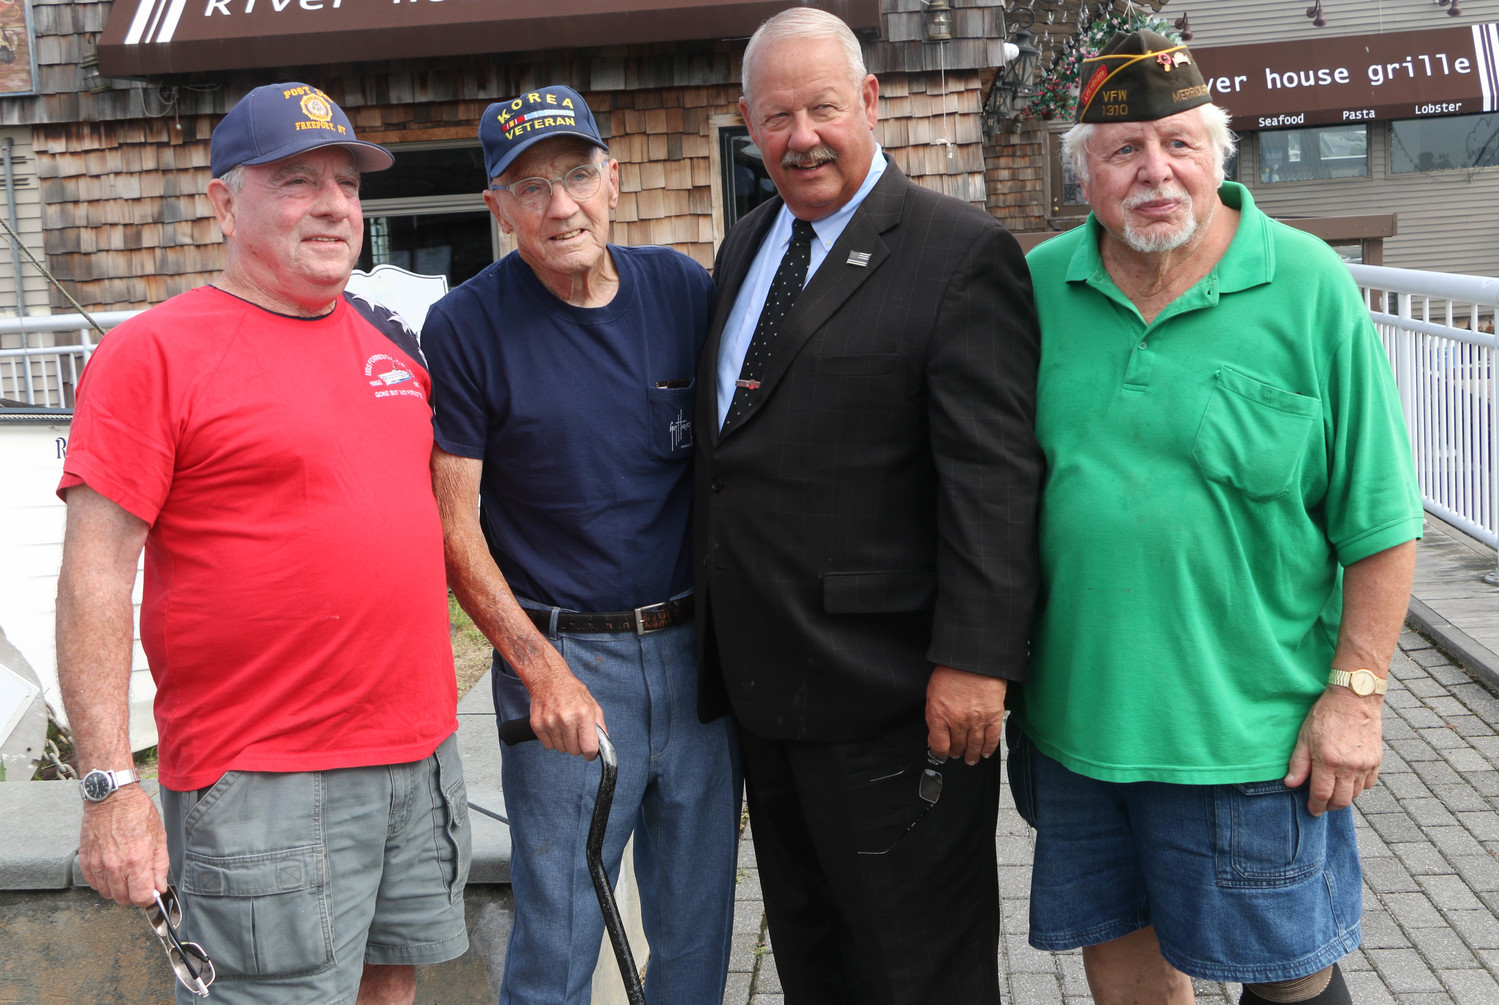 A number of veterans, Ed Martin, left, John Remsen, along with Mayor Robert Kennedy, also a Navy veteran, and Vinnie Mientus, right, attended the welcoming of the U.S. Naval Academy midshipmen.